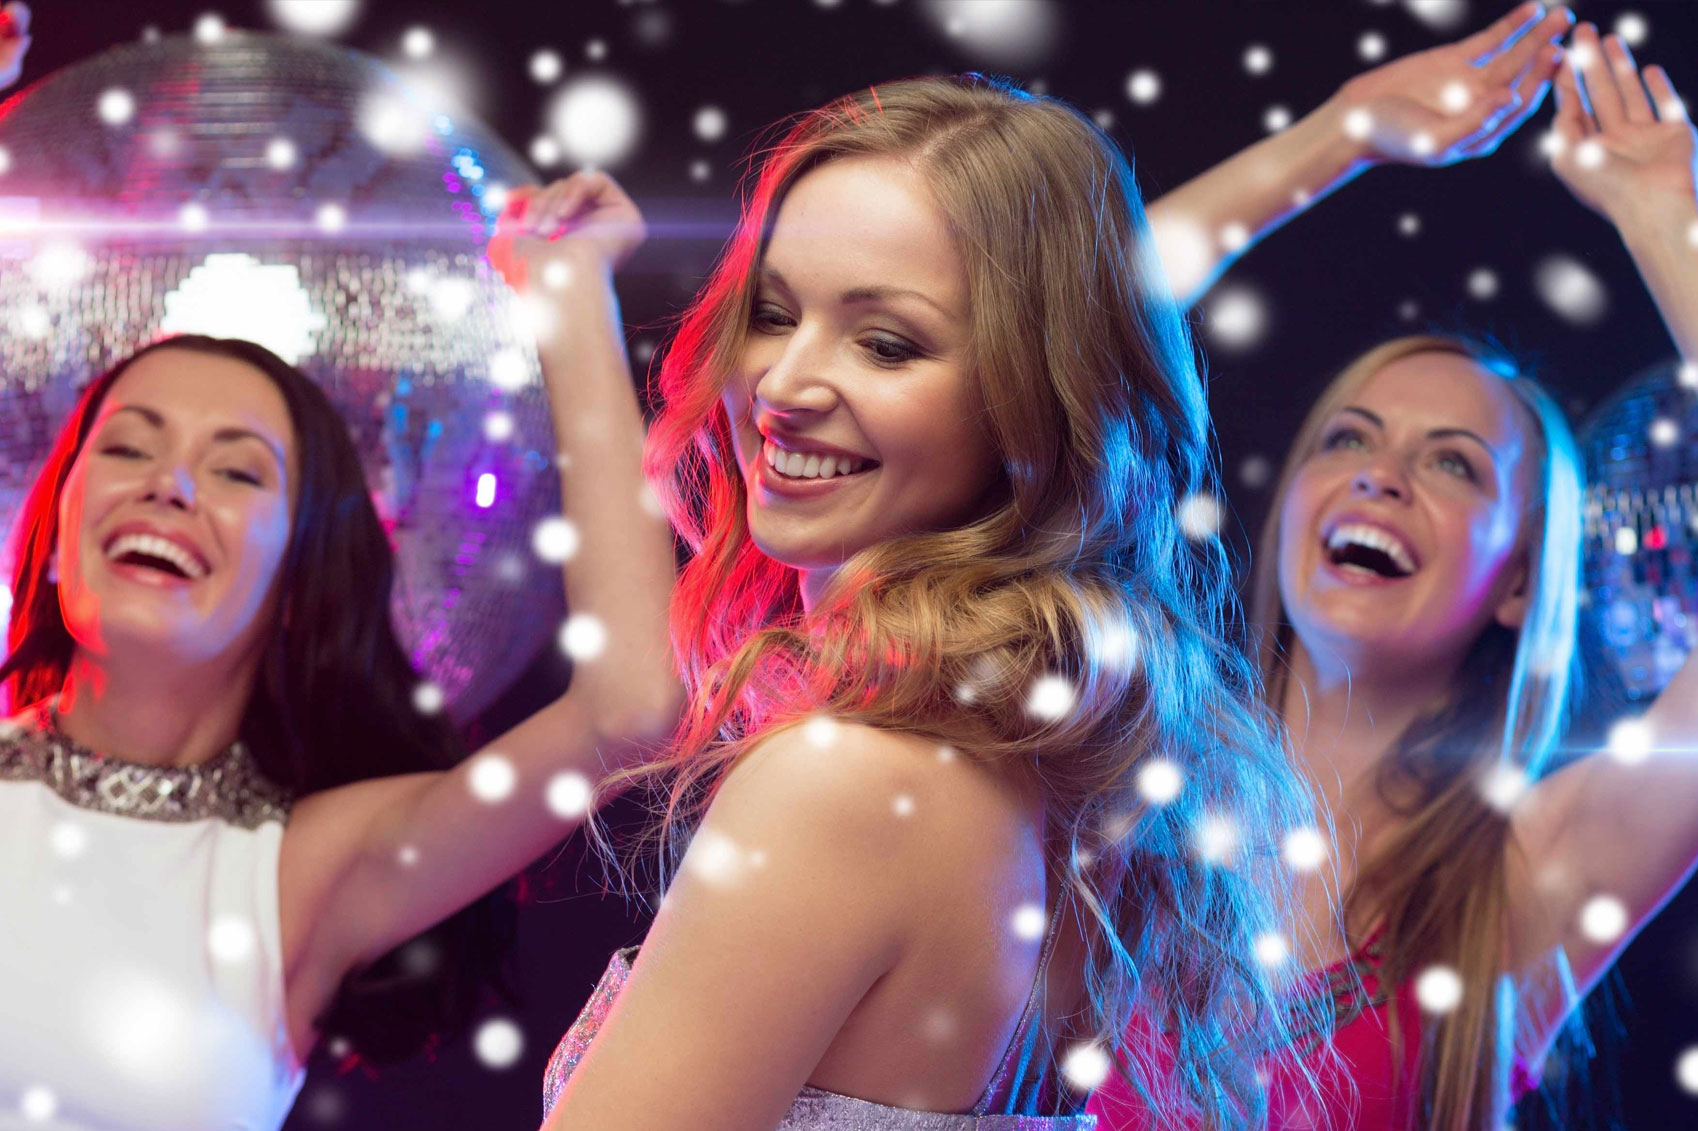 Three Hens Party Games to Get Your Bride Blushing